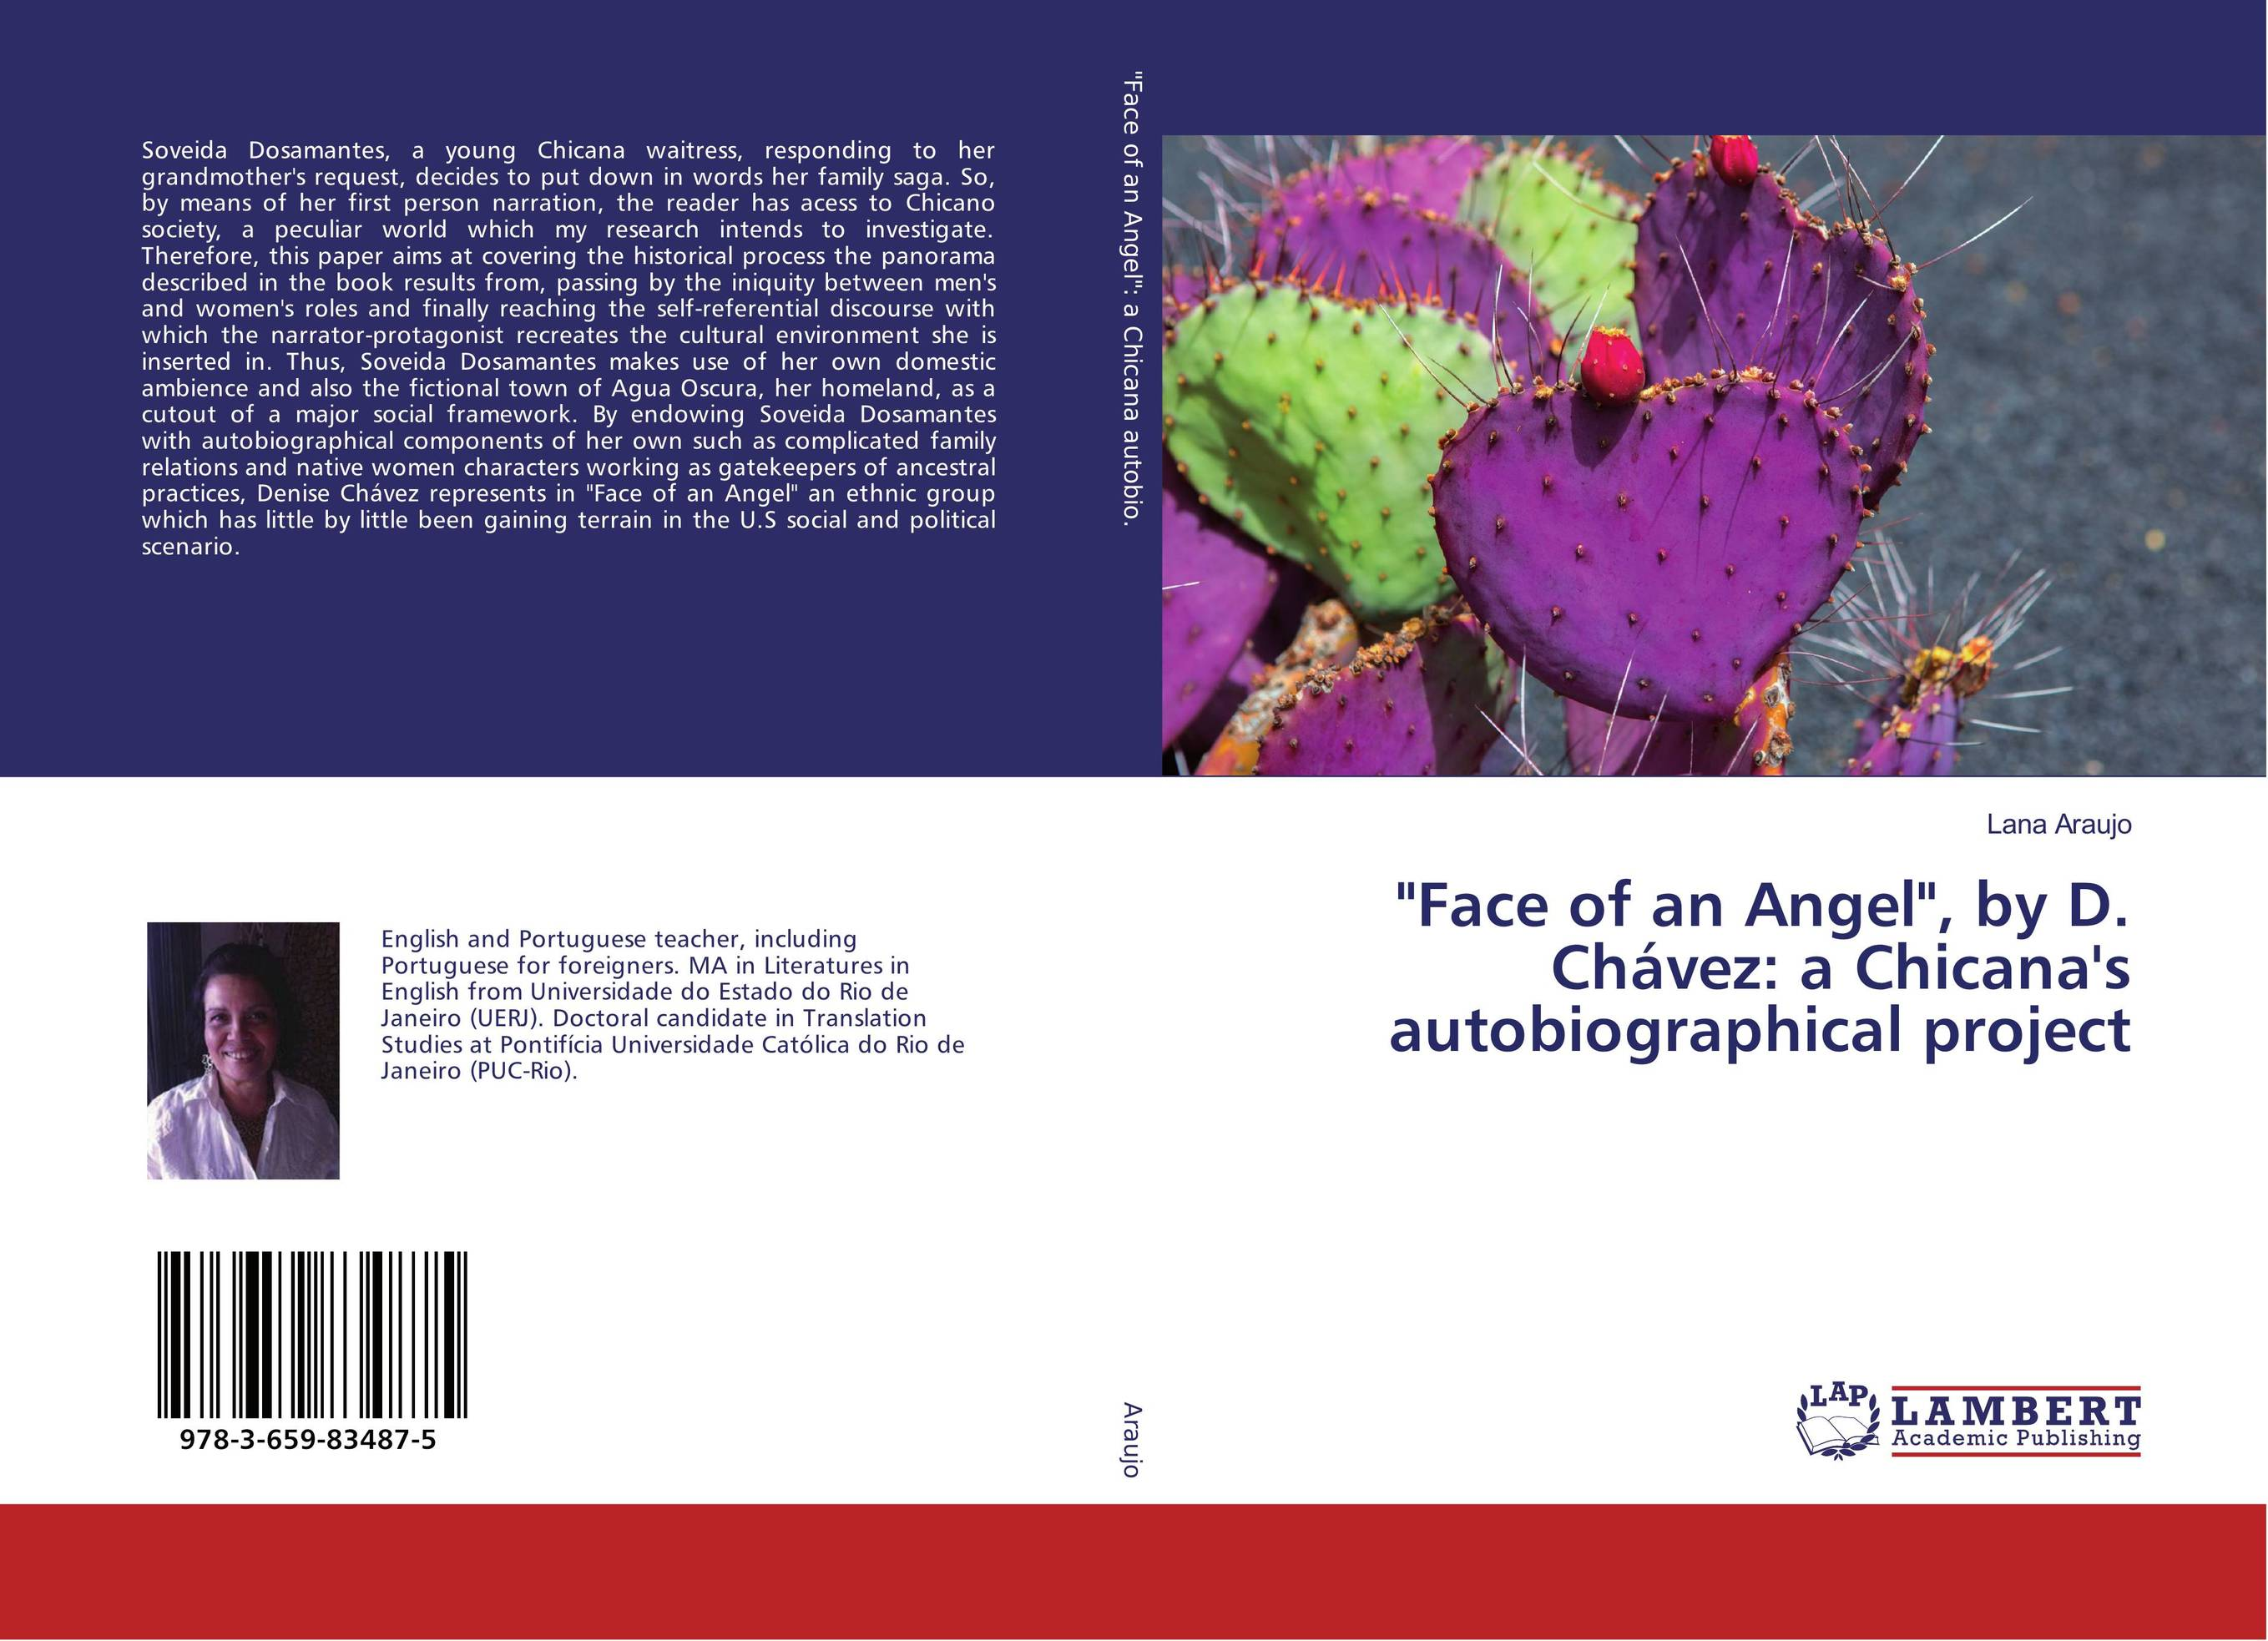 Face of an Angel, by D. Chavez: a Chicana's autobiographical project to seduce an angel